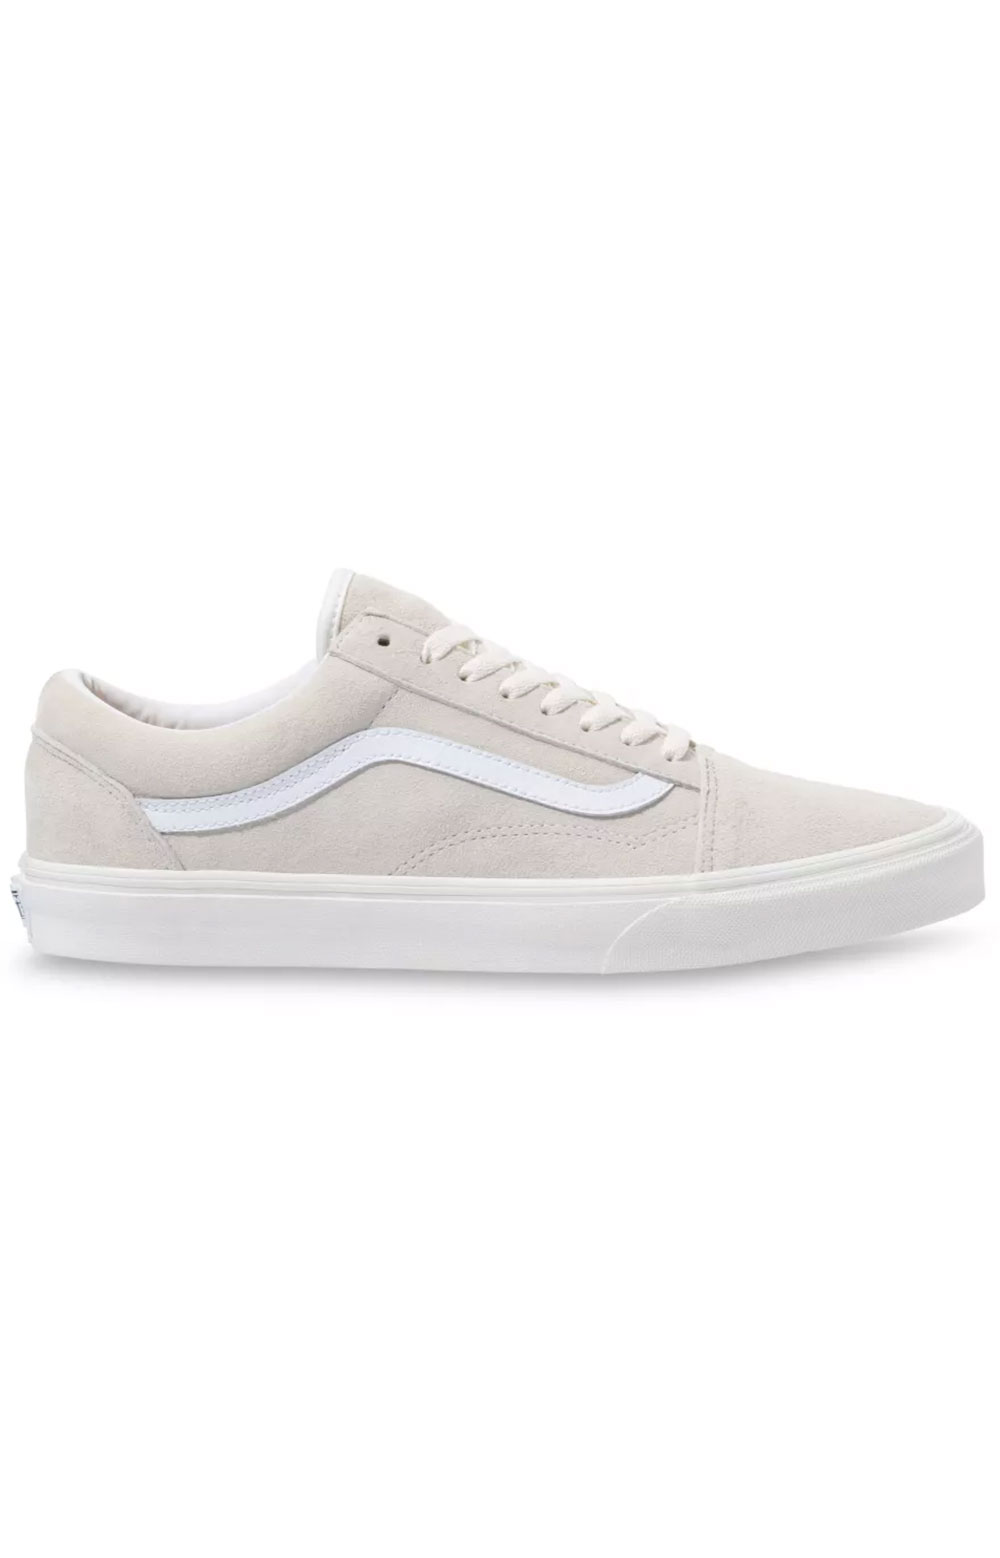 (U3B19A) Pig Suede Old Skool Shoe - Marshmallow